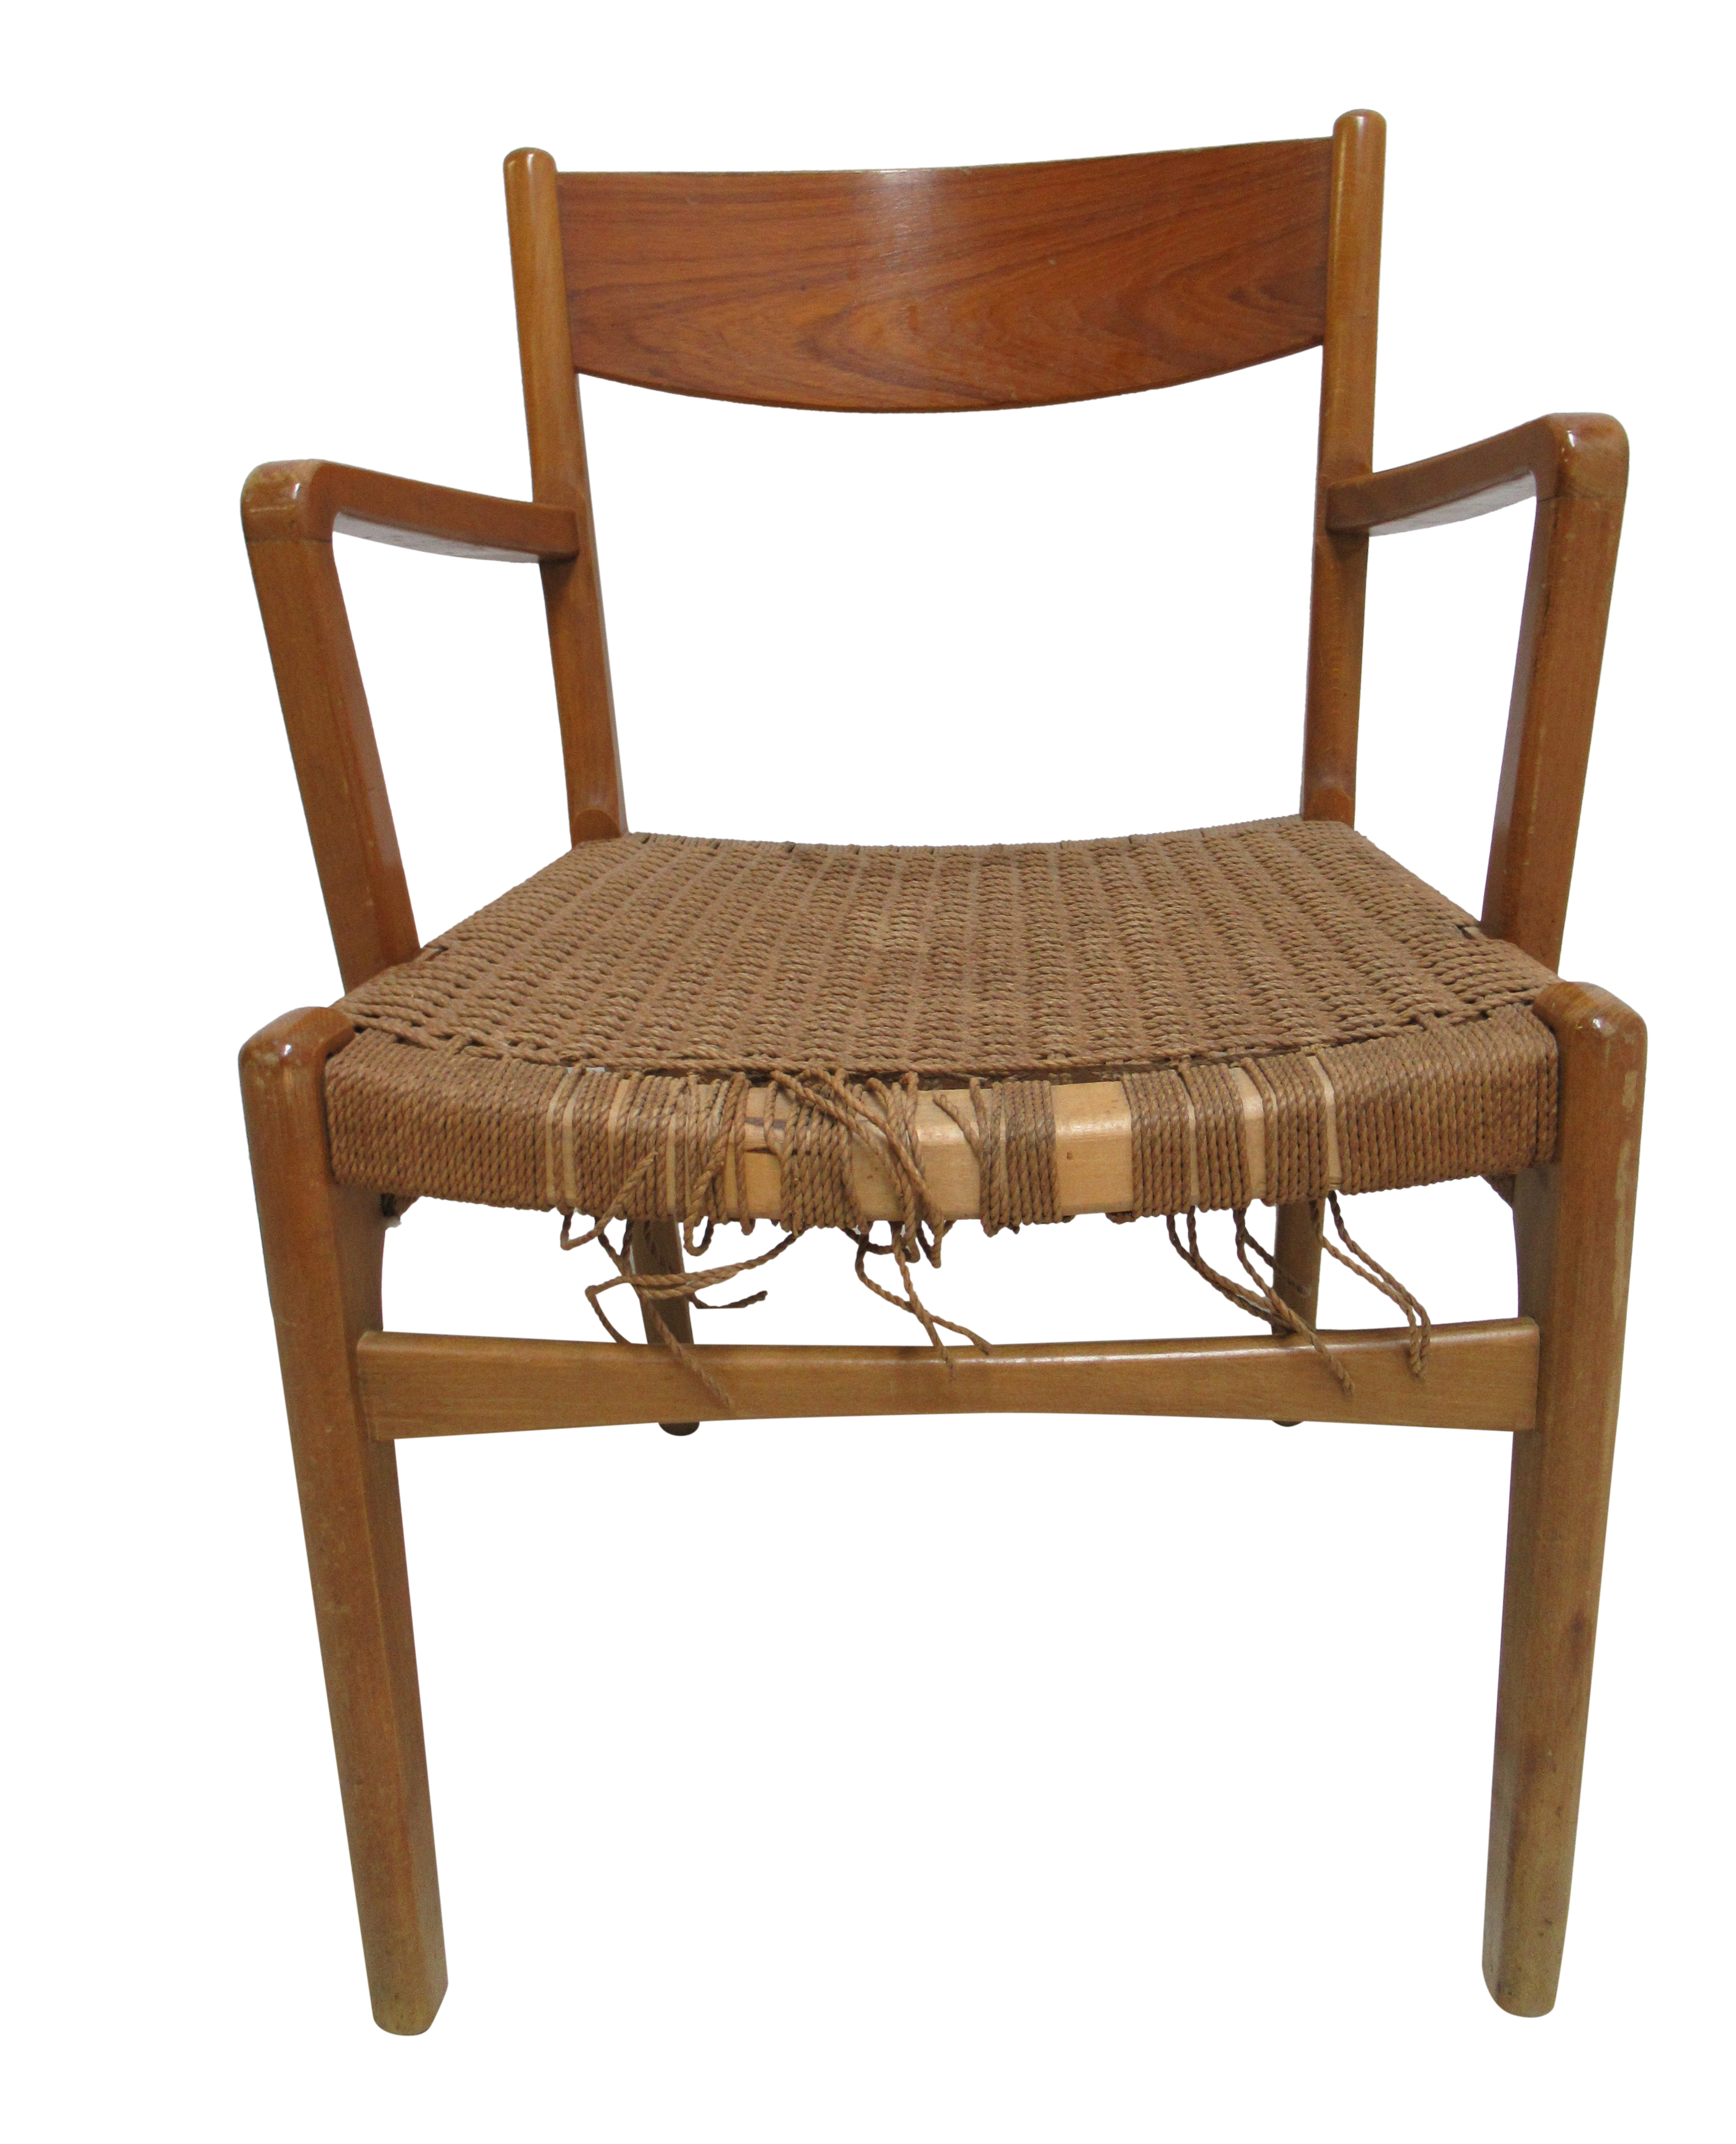 Vintage han wagner style danish modern woven seat arm chair chairish